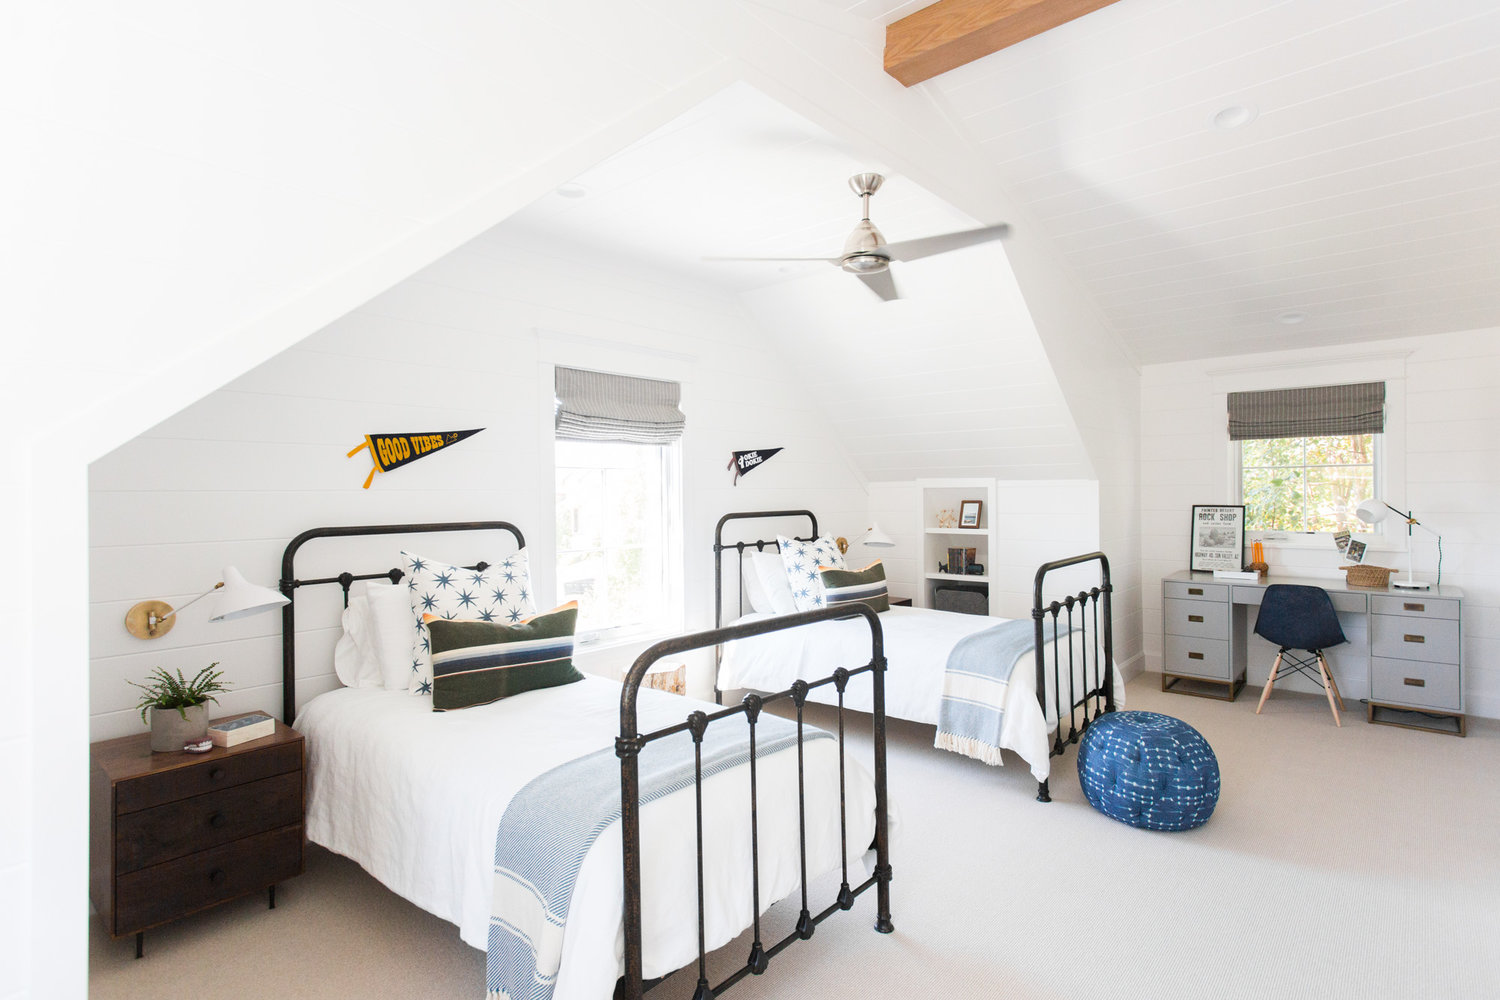 Attic bedroom and white entry door